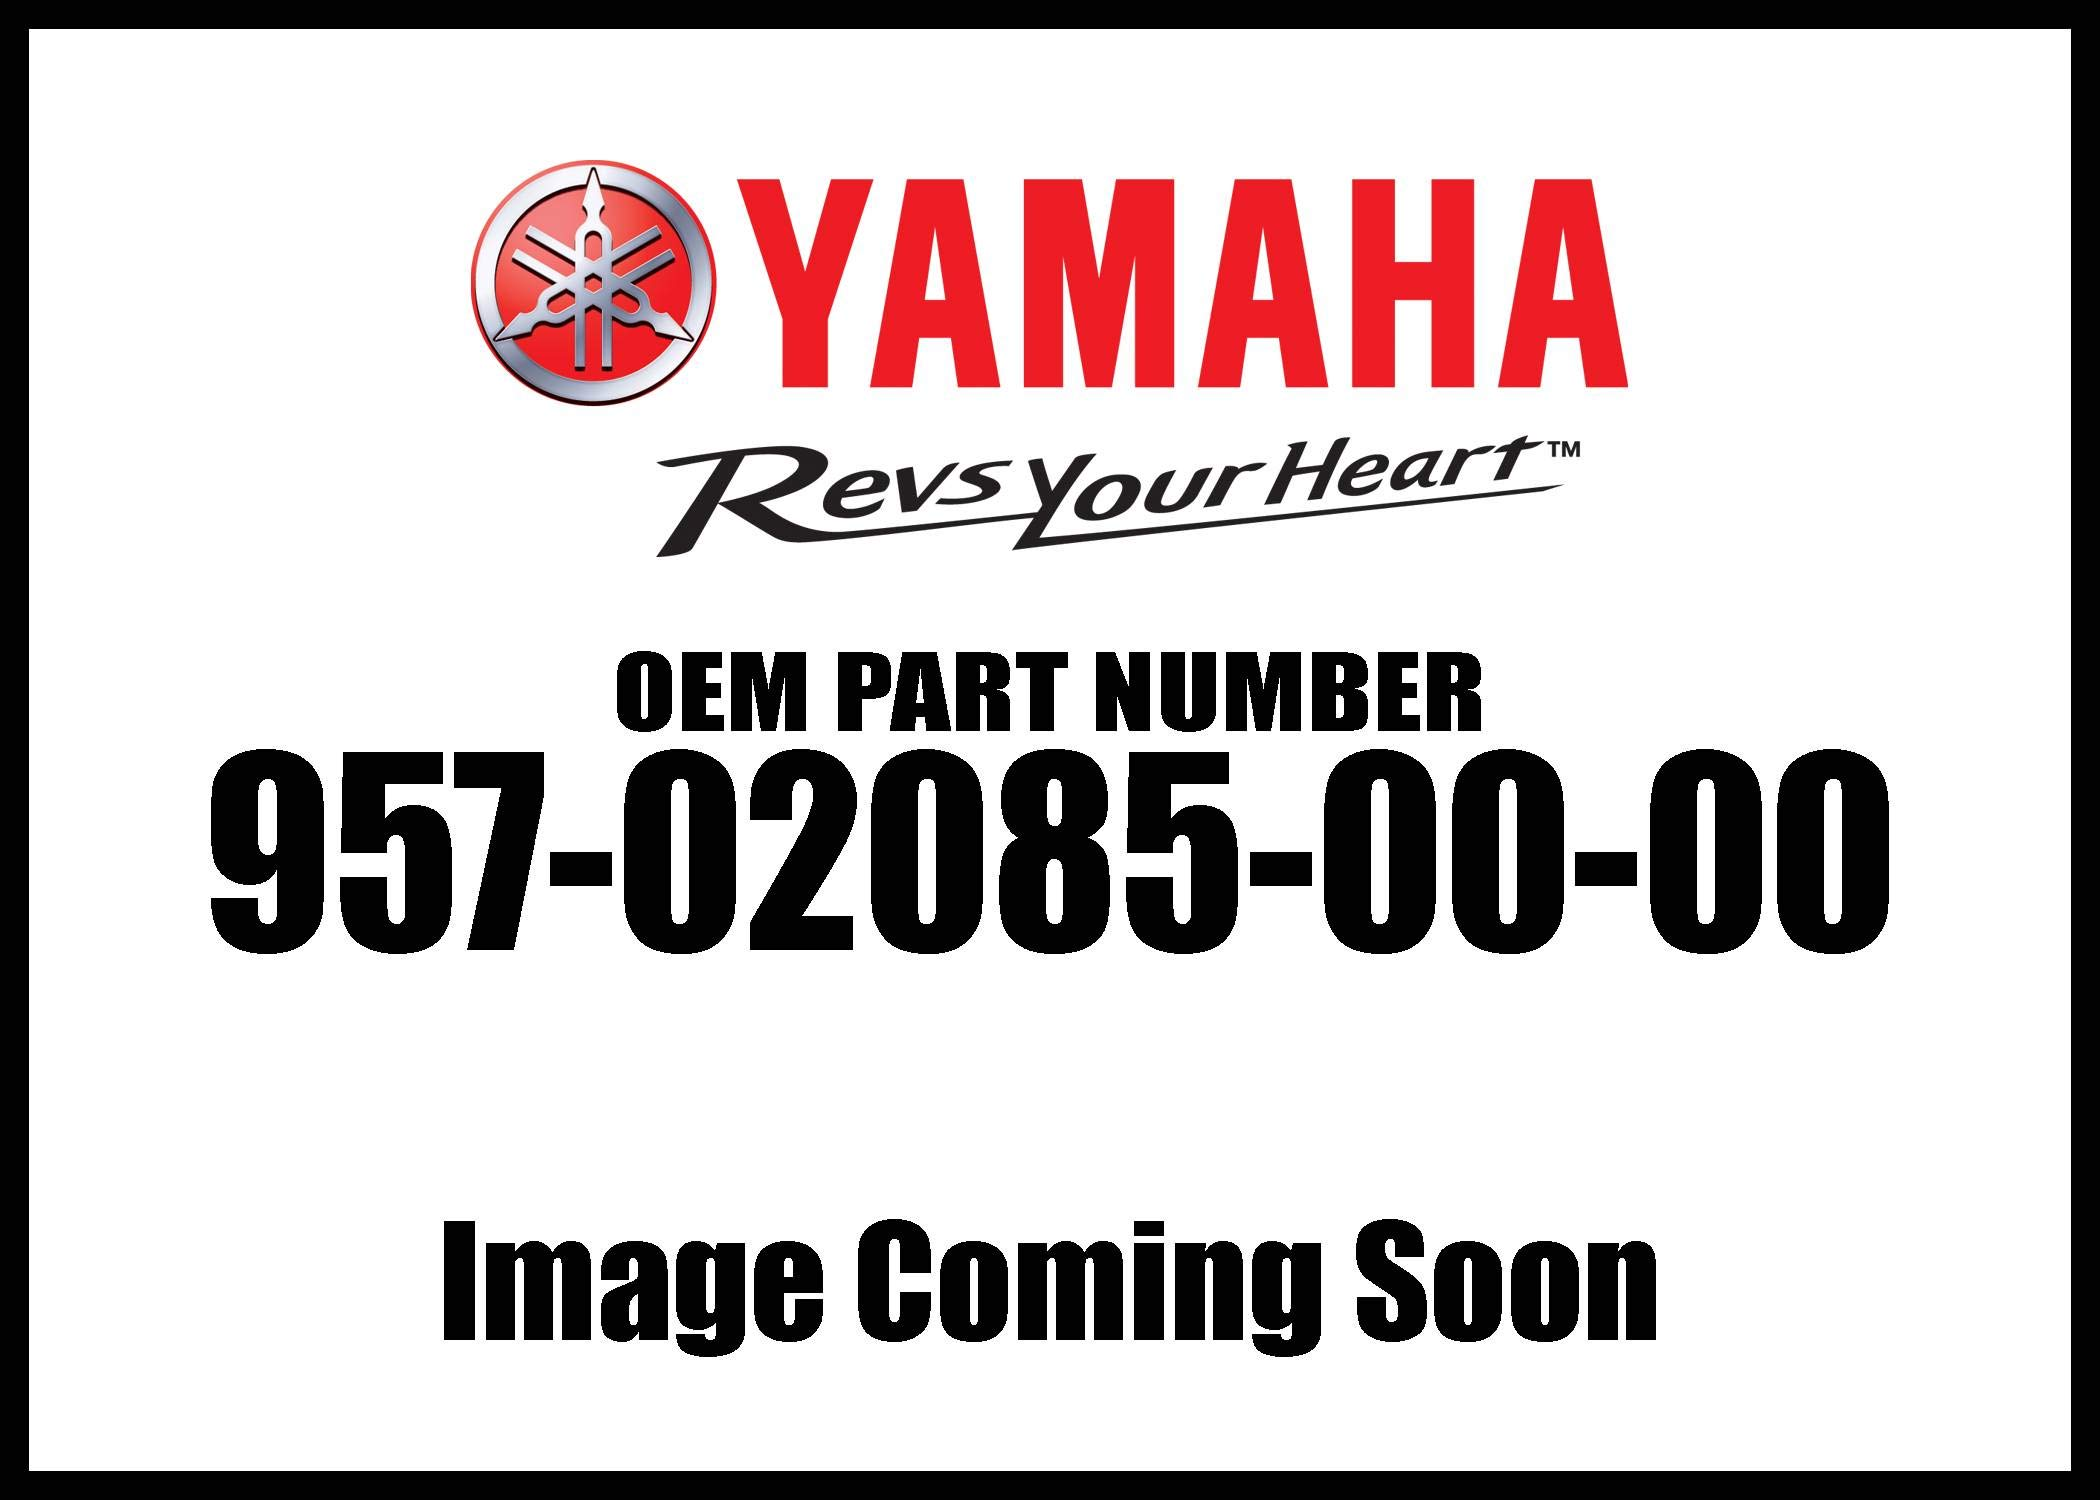 Yamaha 95702-08500-00 Nut,Flange (Jn5); New # 95707-08500-00 Made by Yamaha